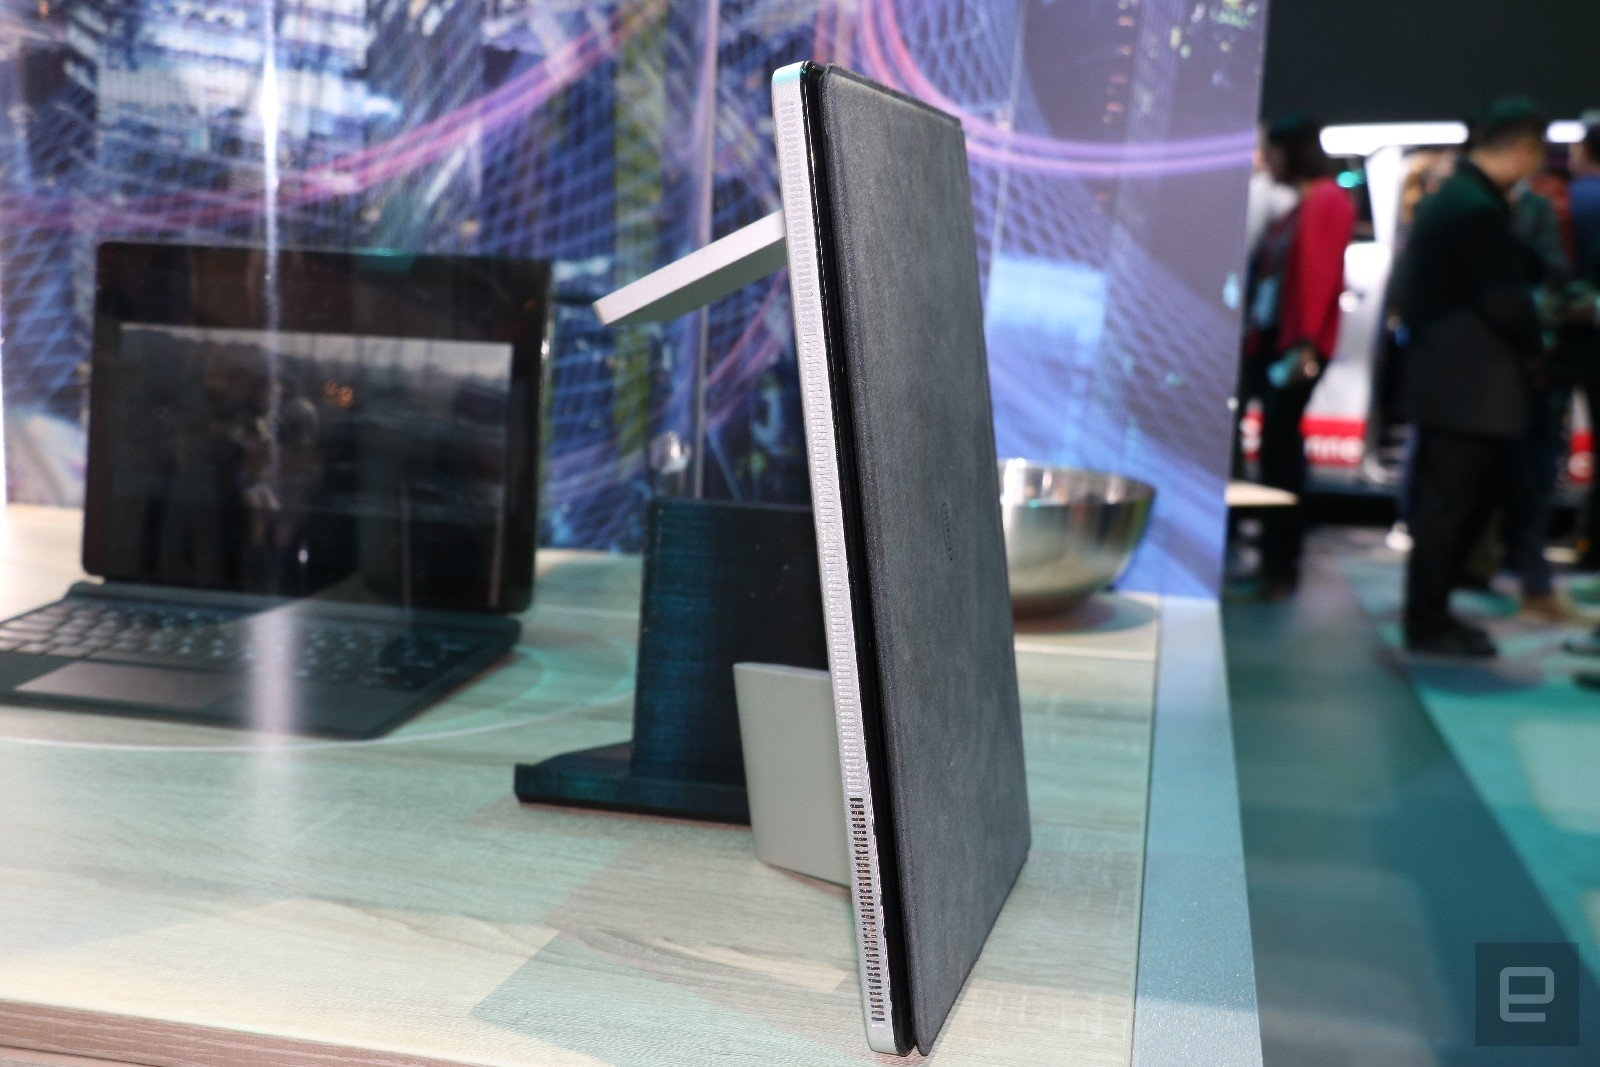 Intel's PC concept 'hides' a 5G antenna in a plump kickstand | DeviceDaily.com